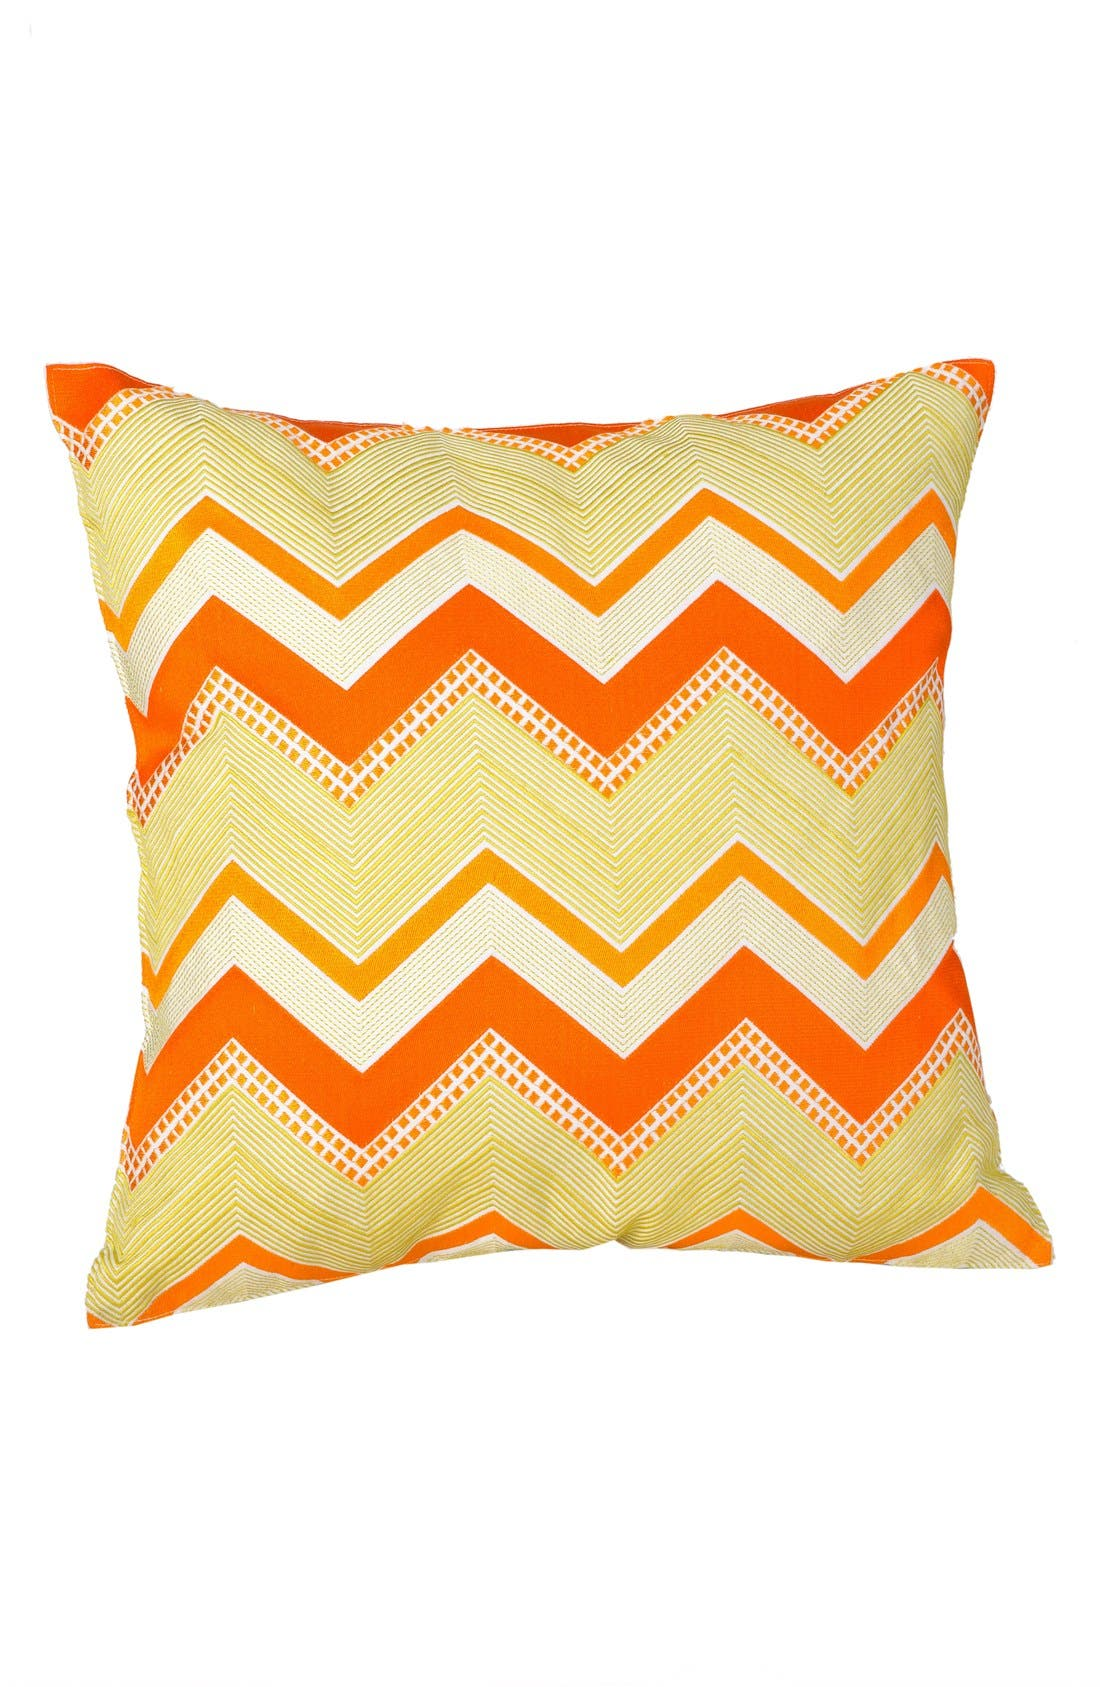 Main Image - Trina Turk 'Zebra Stripe - Citrus Chevron' Pillow